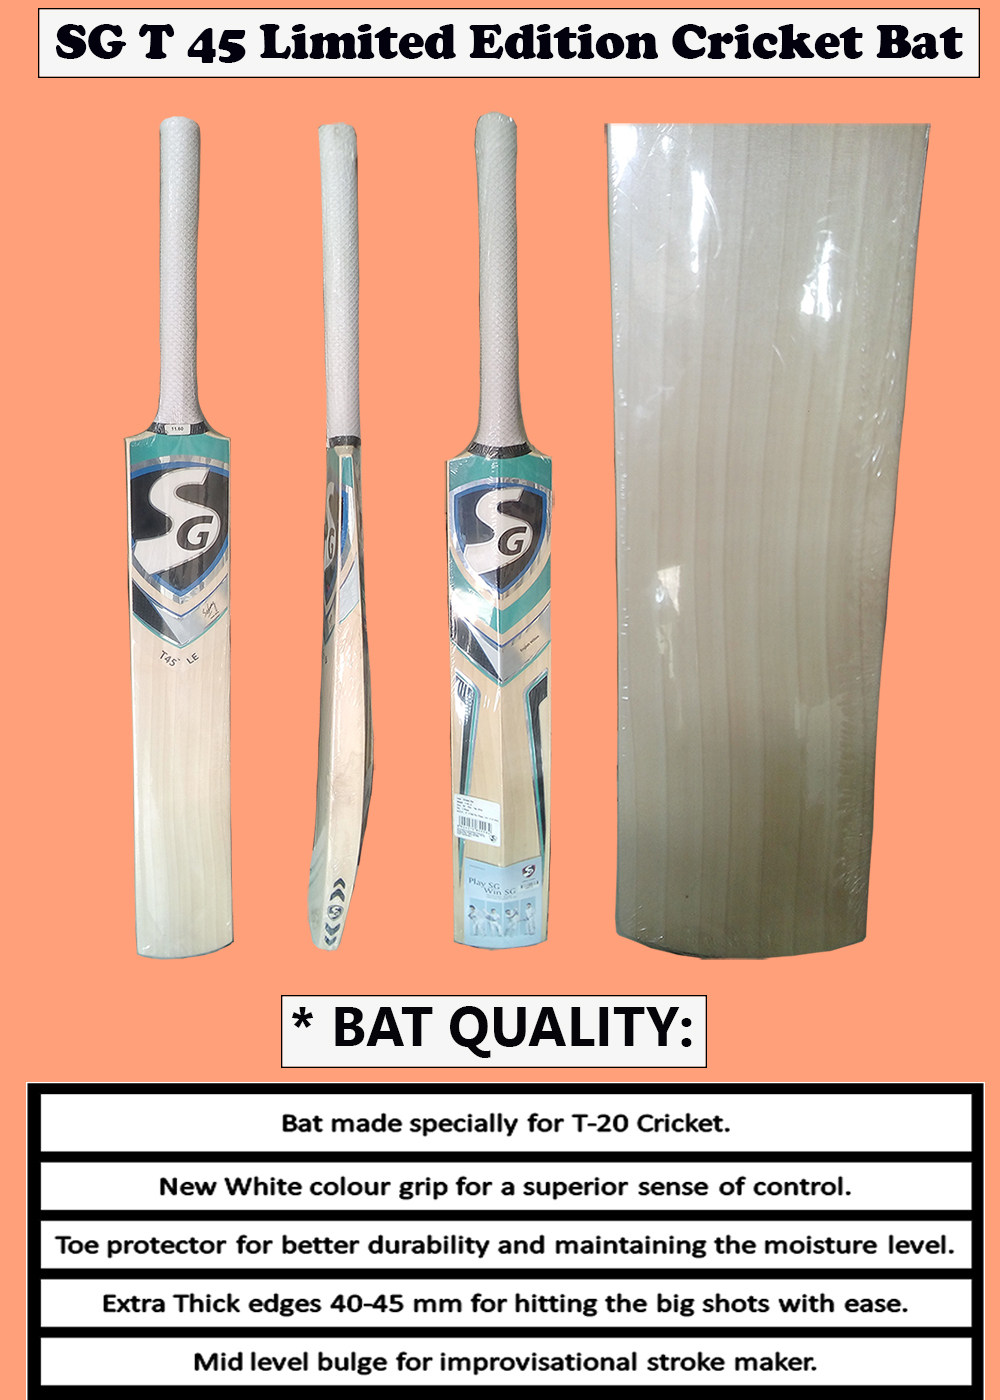 SG T 45 Limited Edition Cricket Bat_3